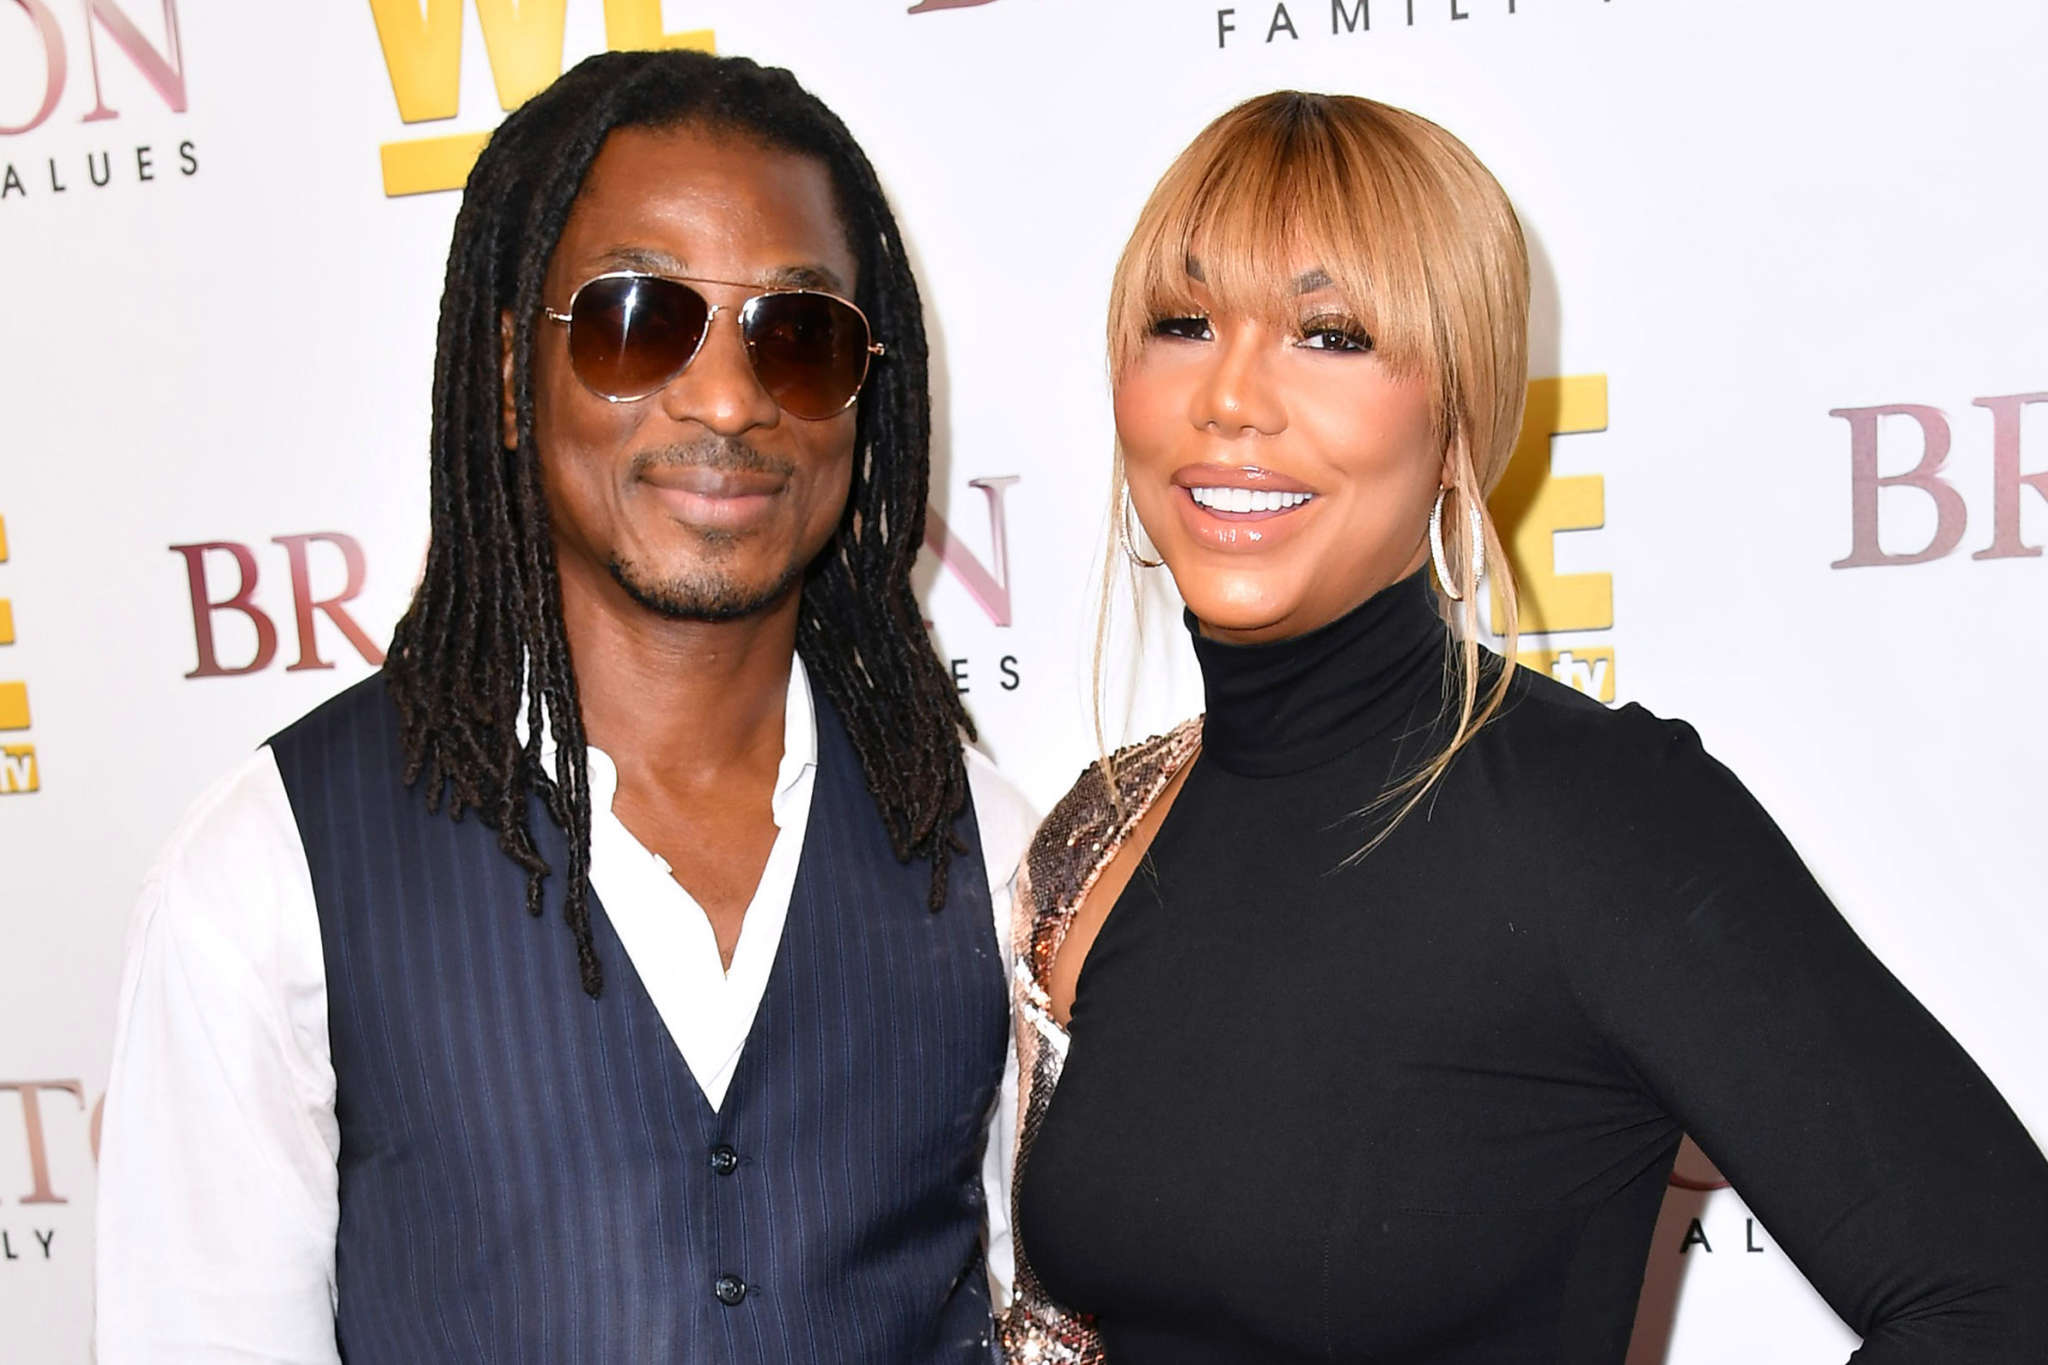 tamar-braxton-and-her-boo-david-adefeso-publicly-proclaim-their-love-for-one-another-read-their-emotional-messages-that-have-fans-crying-tears-of-joy